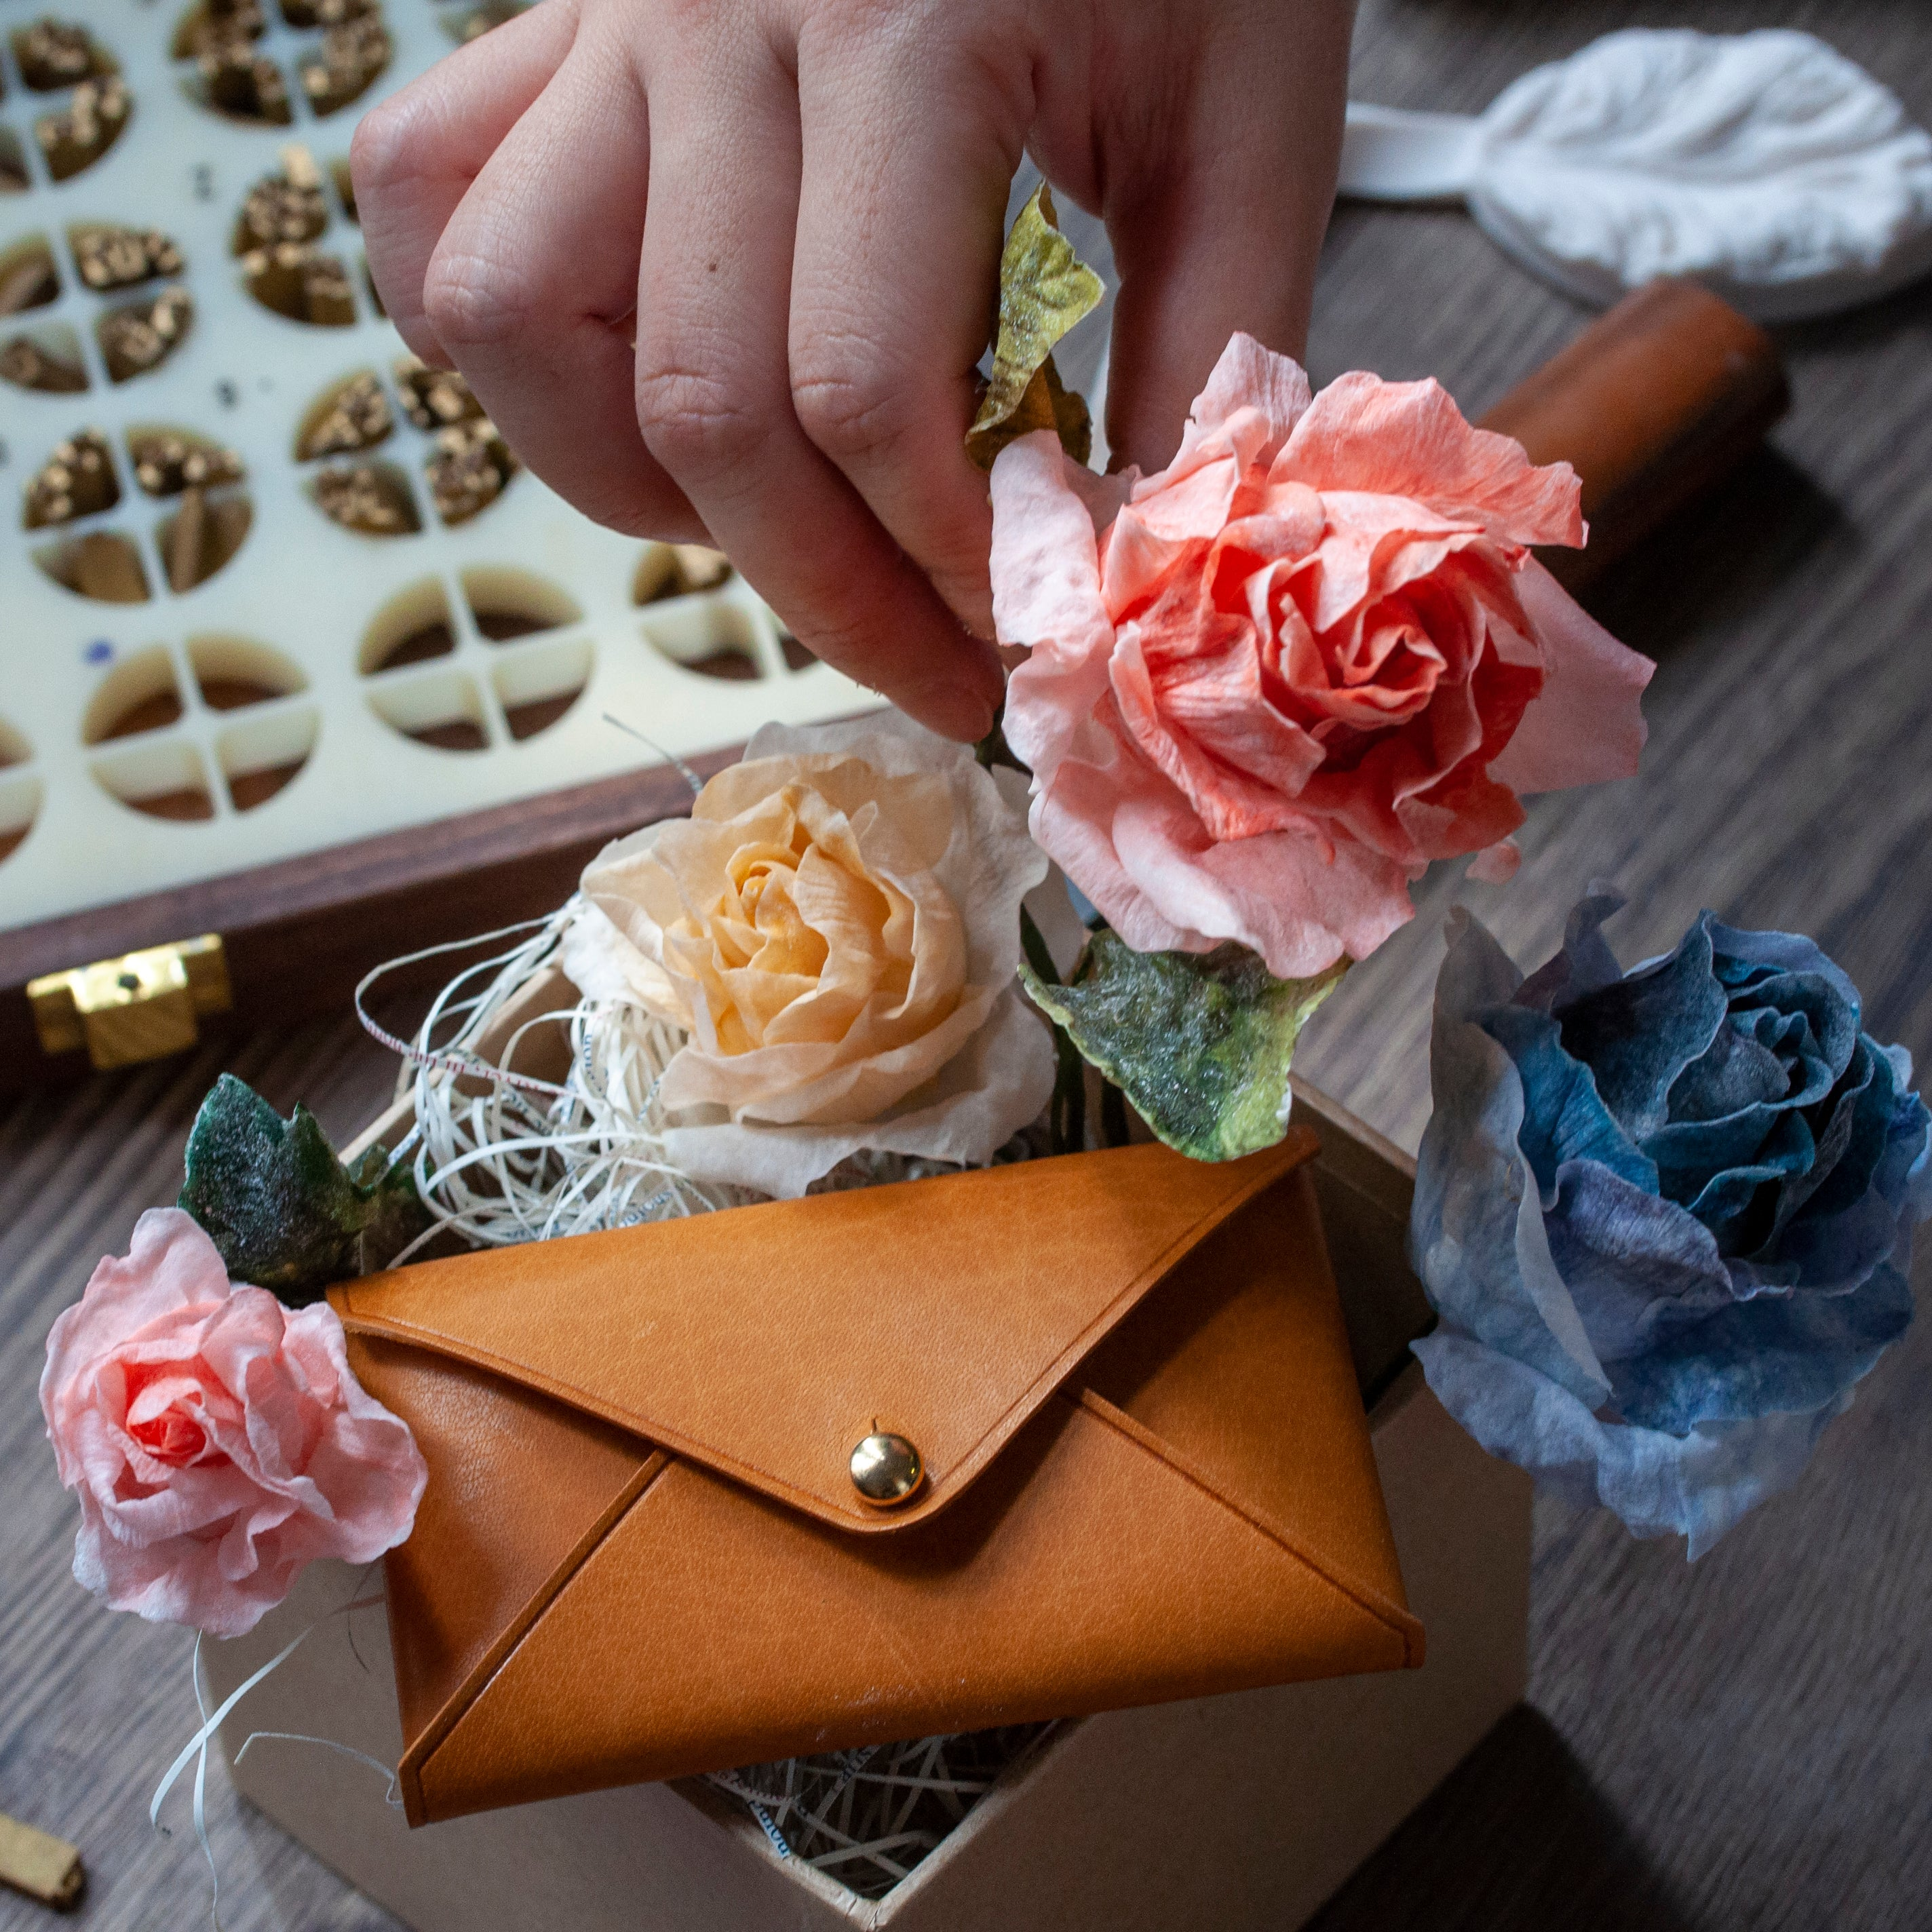 Leather Craft and Wafer Paper Flower Art - Crafune x Natalie (15th Aug, 11.15 am) - Crafune